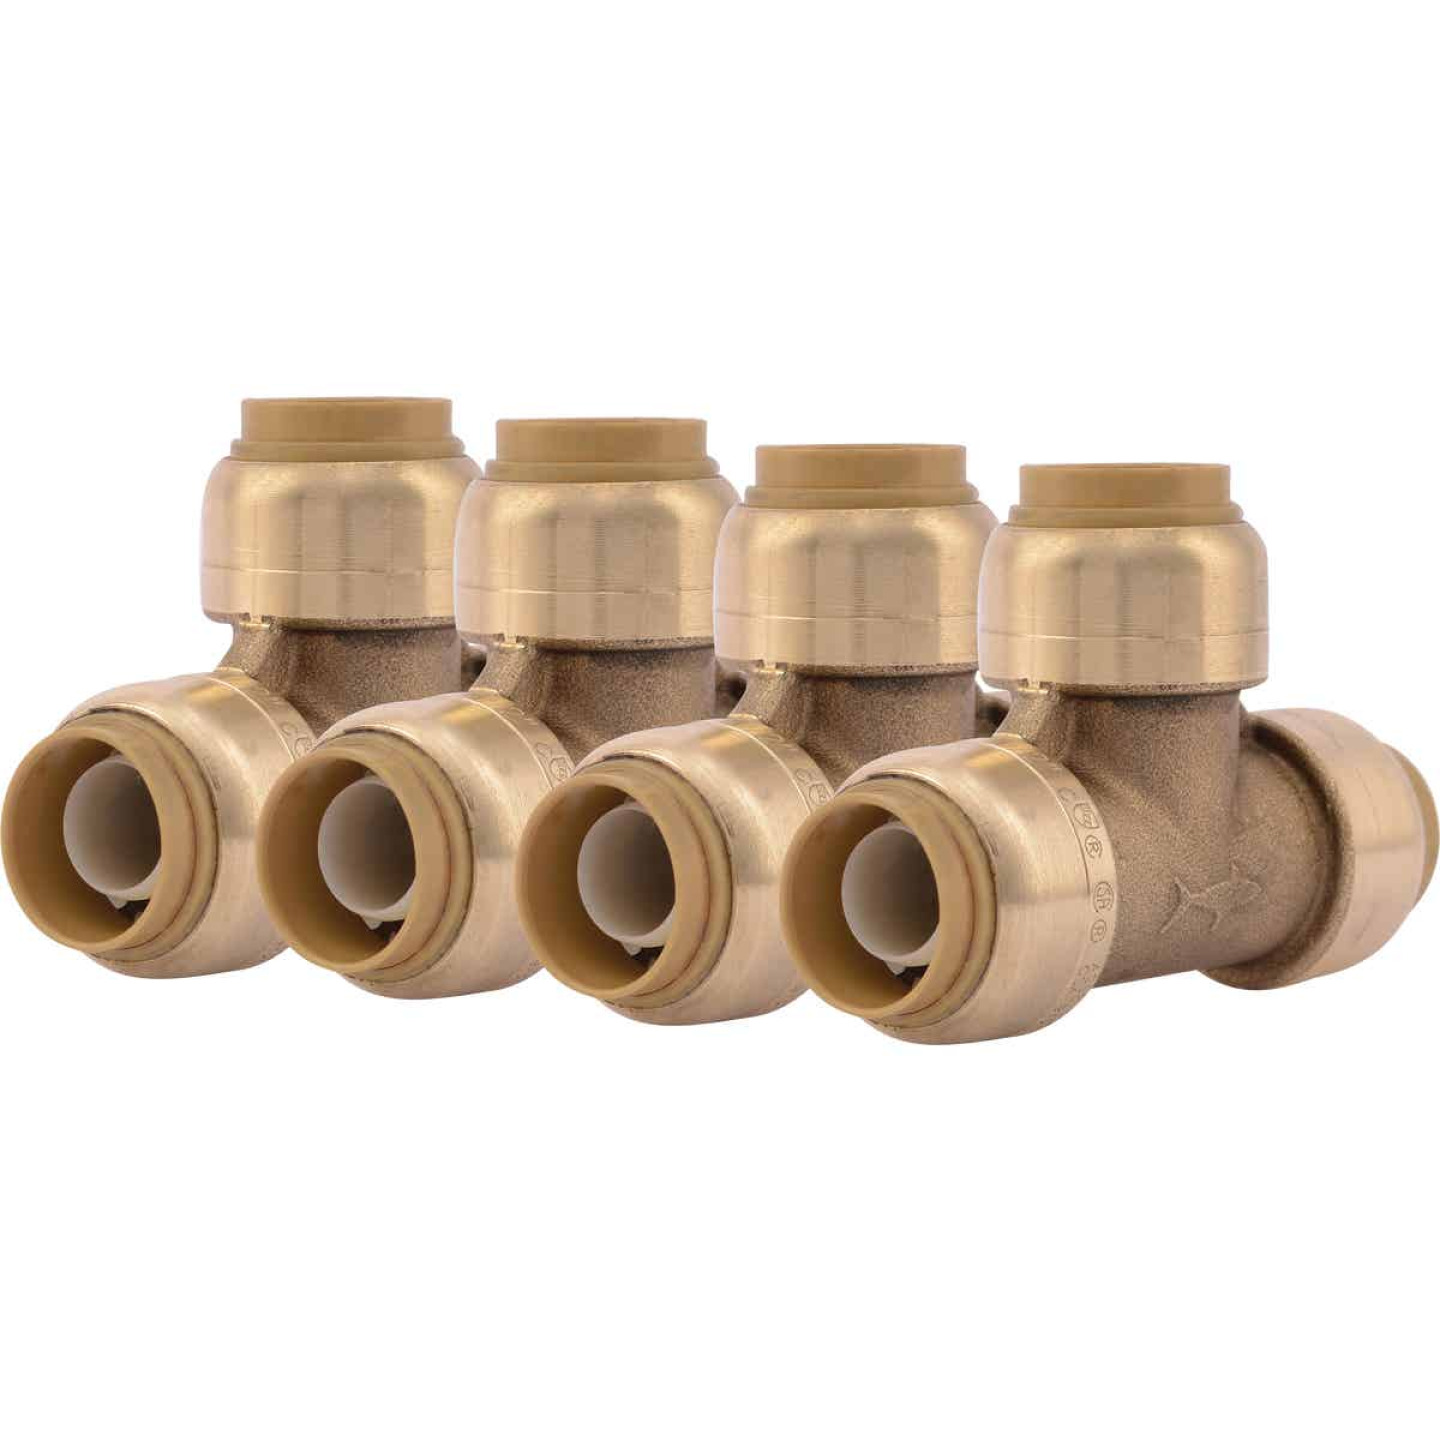 SharkBite 1/2 In. x 1/2 In. x 1/2 In. Brass Push-to-Connect Tee (4-Pack) Image 1